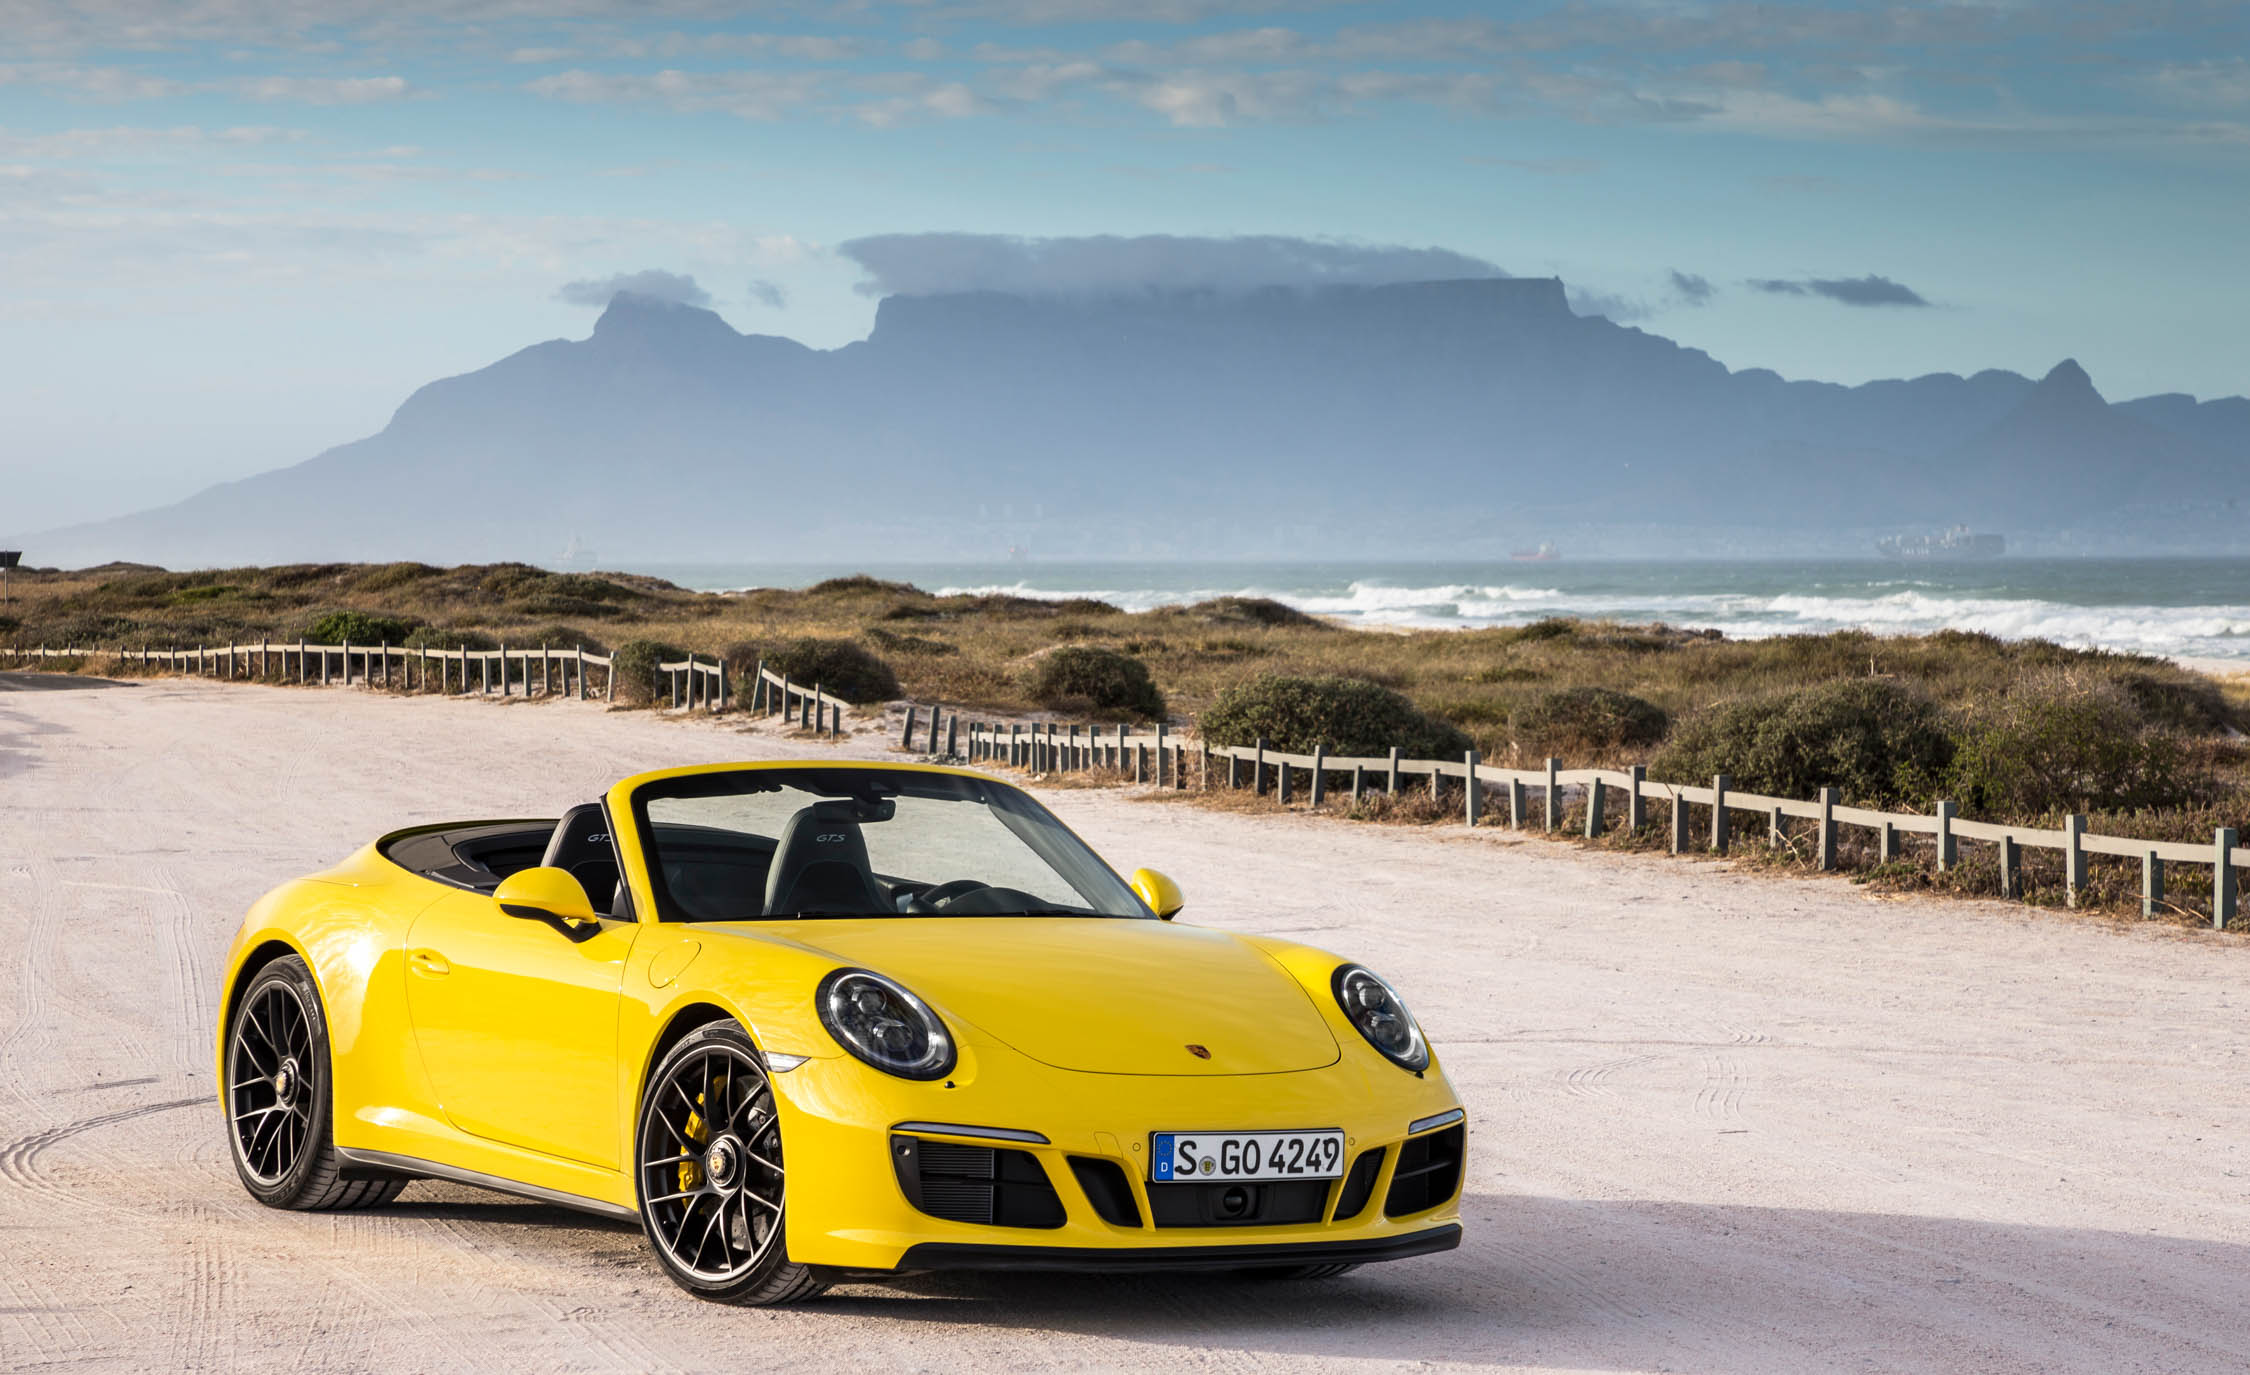 2017 Porsche 911 Carrera 4 GTS Cabriolet Exterior Front And Side (Photo 3 of 97)